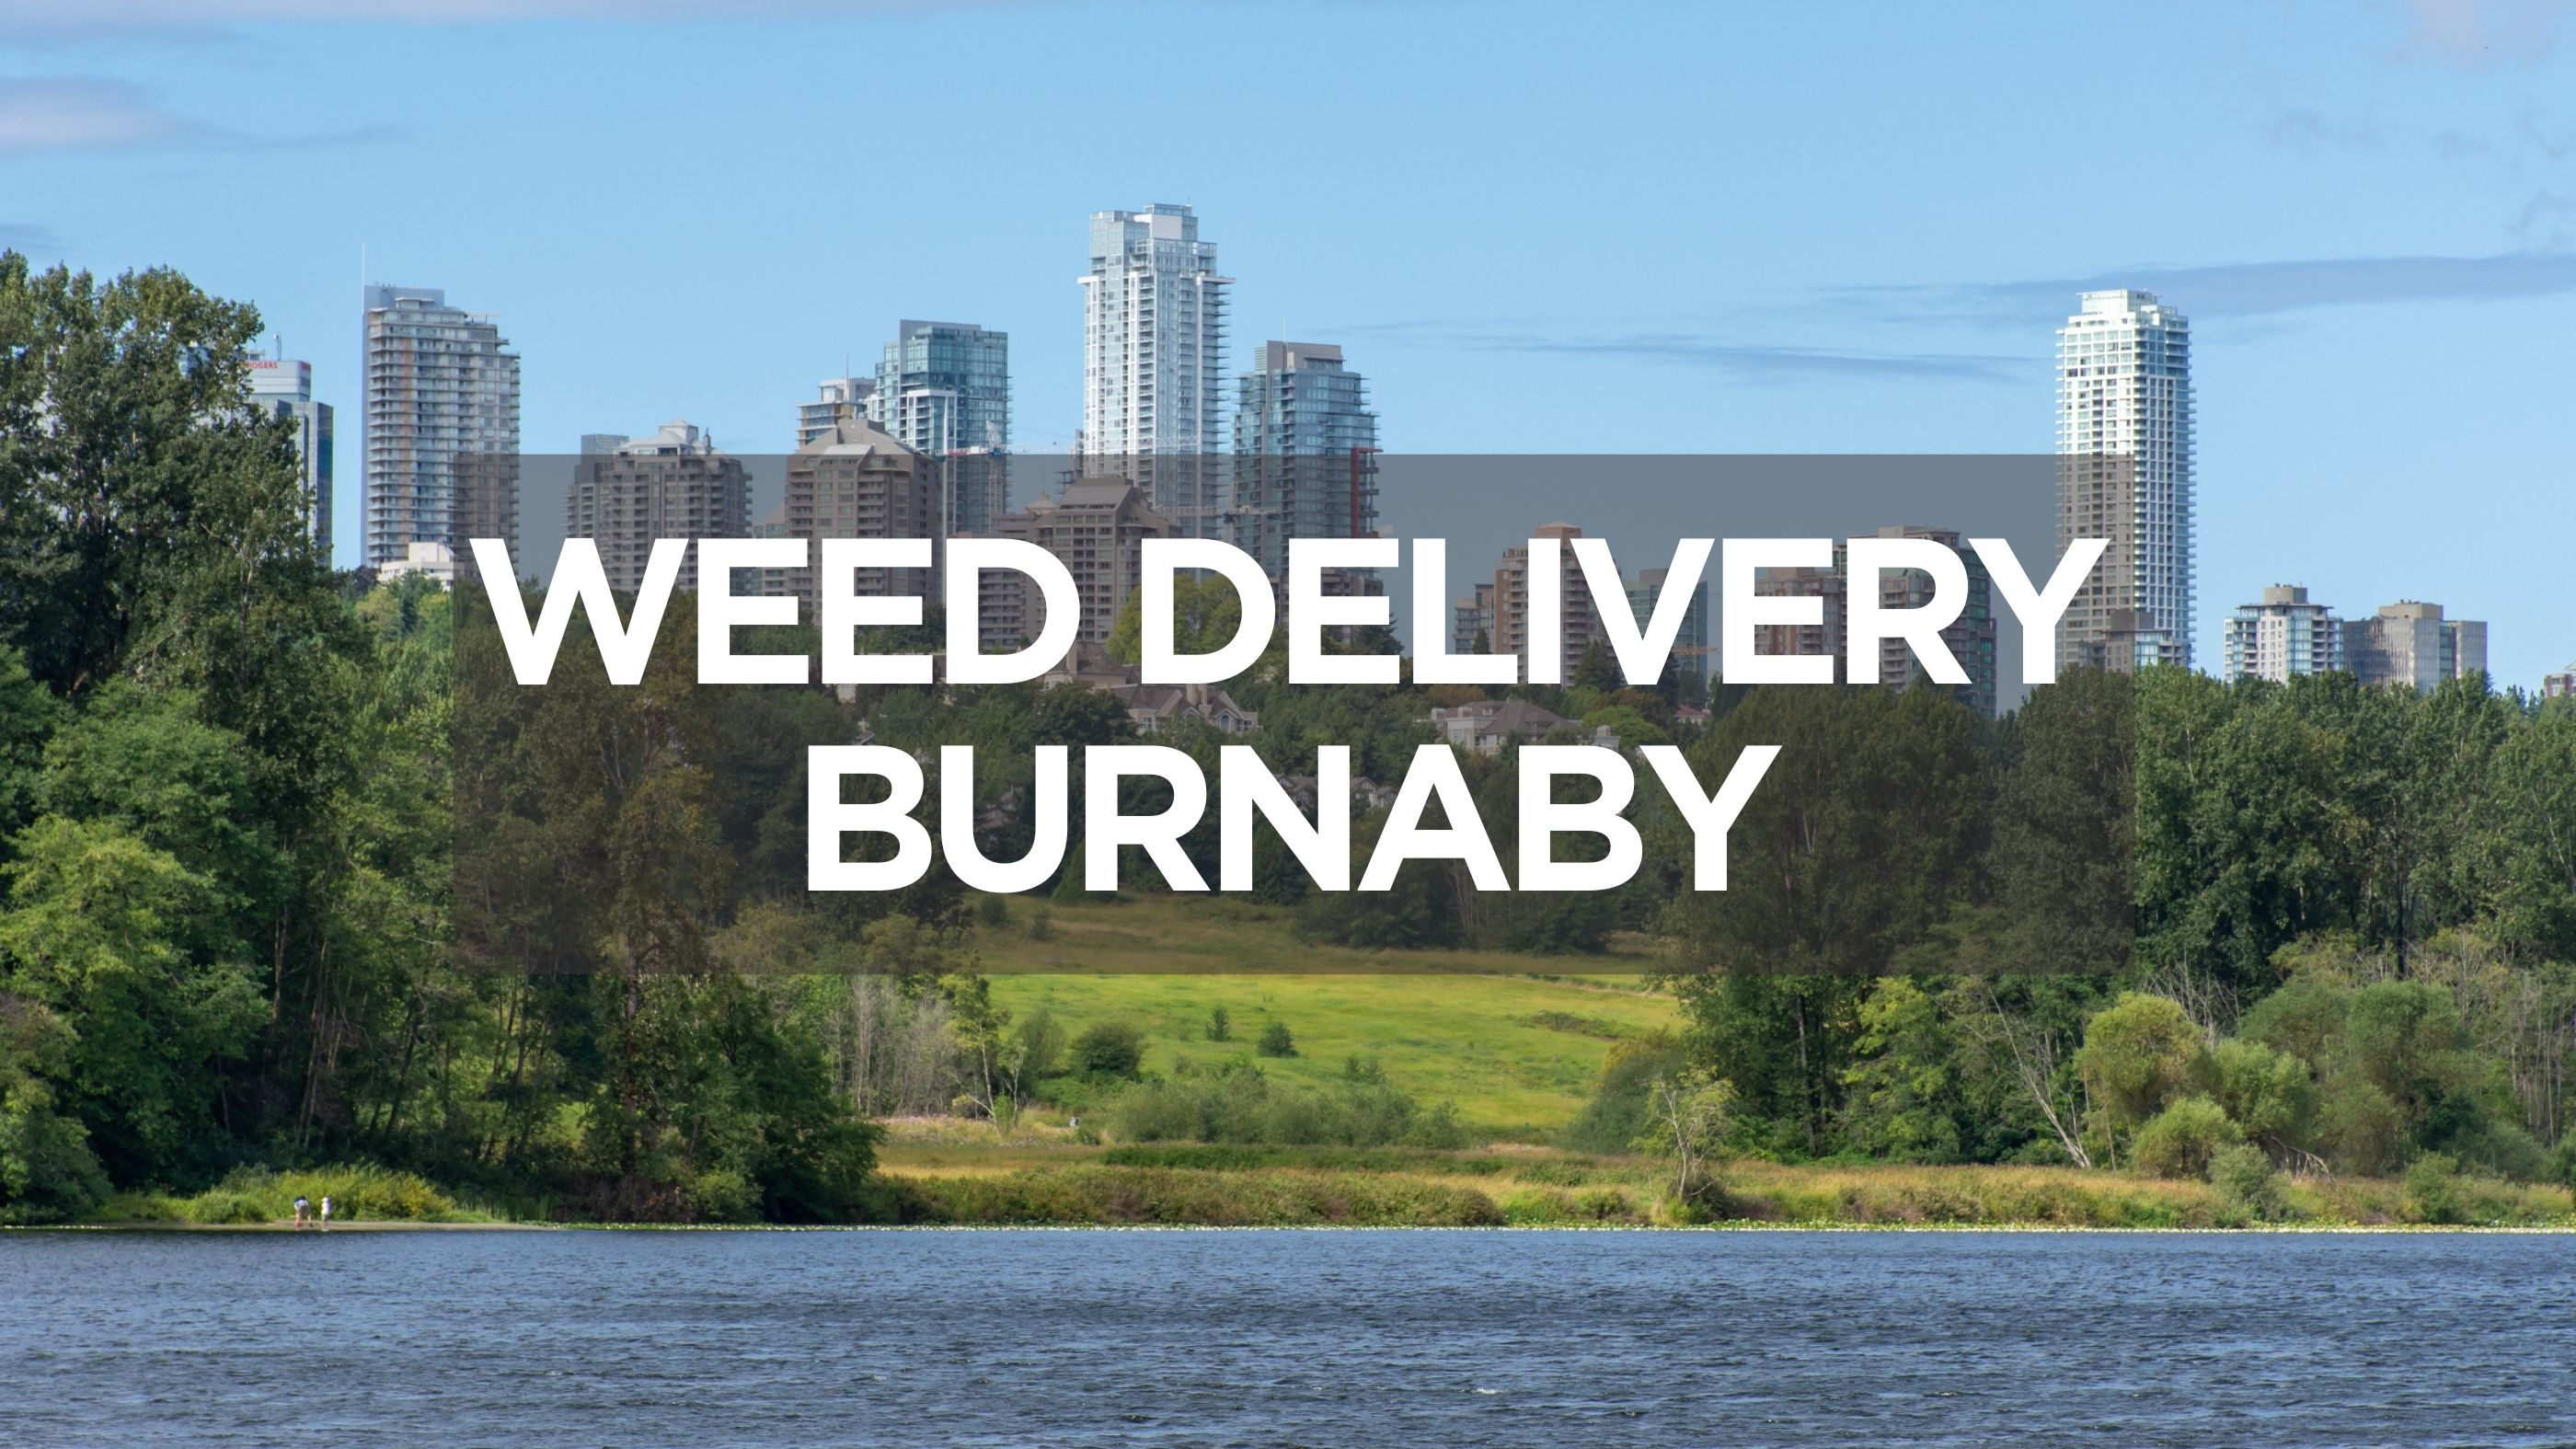 Weed Delivery Burnaby